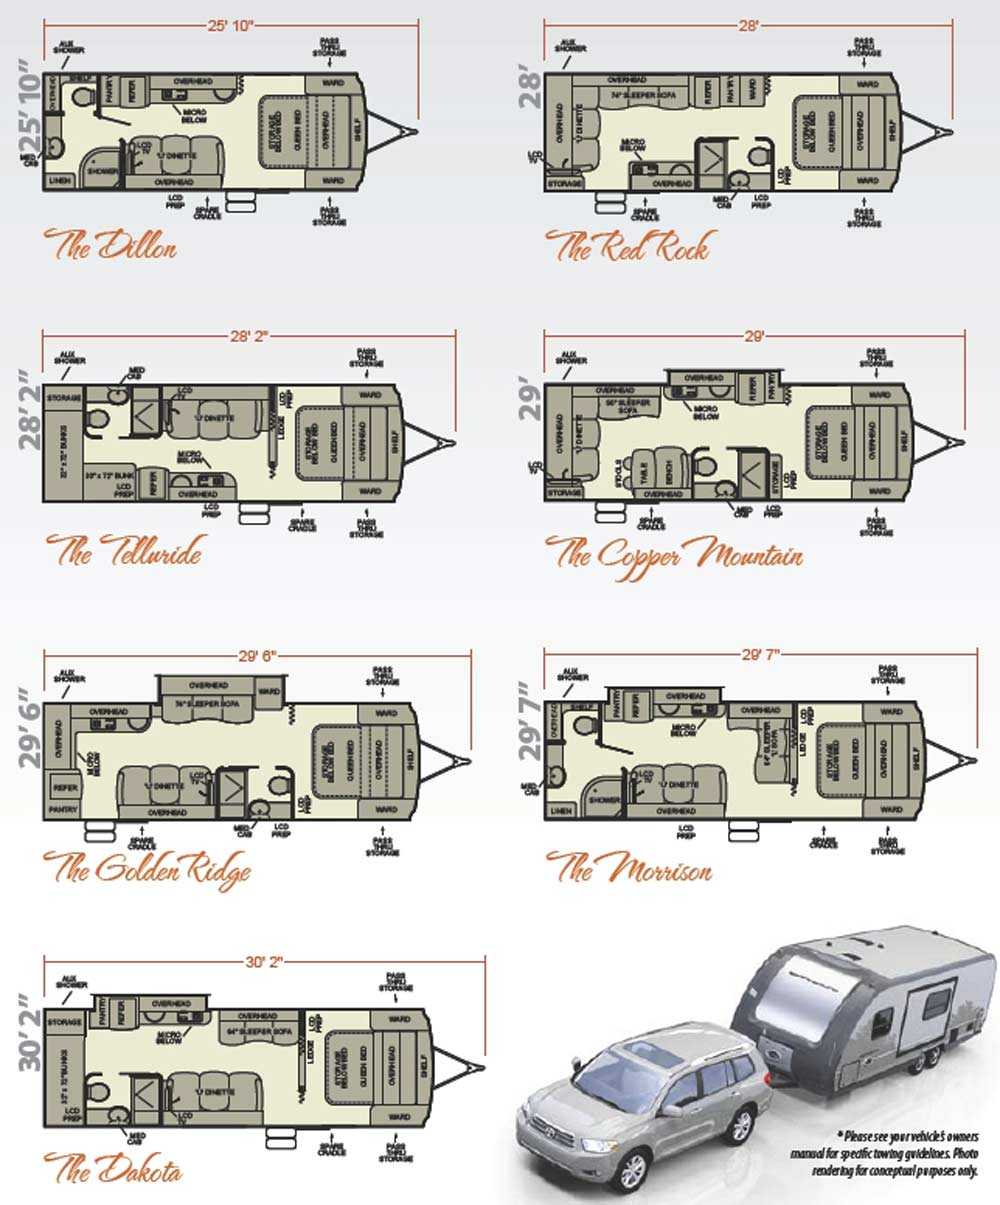 Earthbound travel trailer floorplans large picture